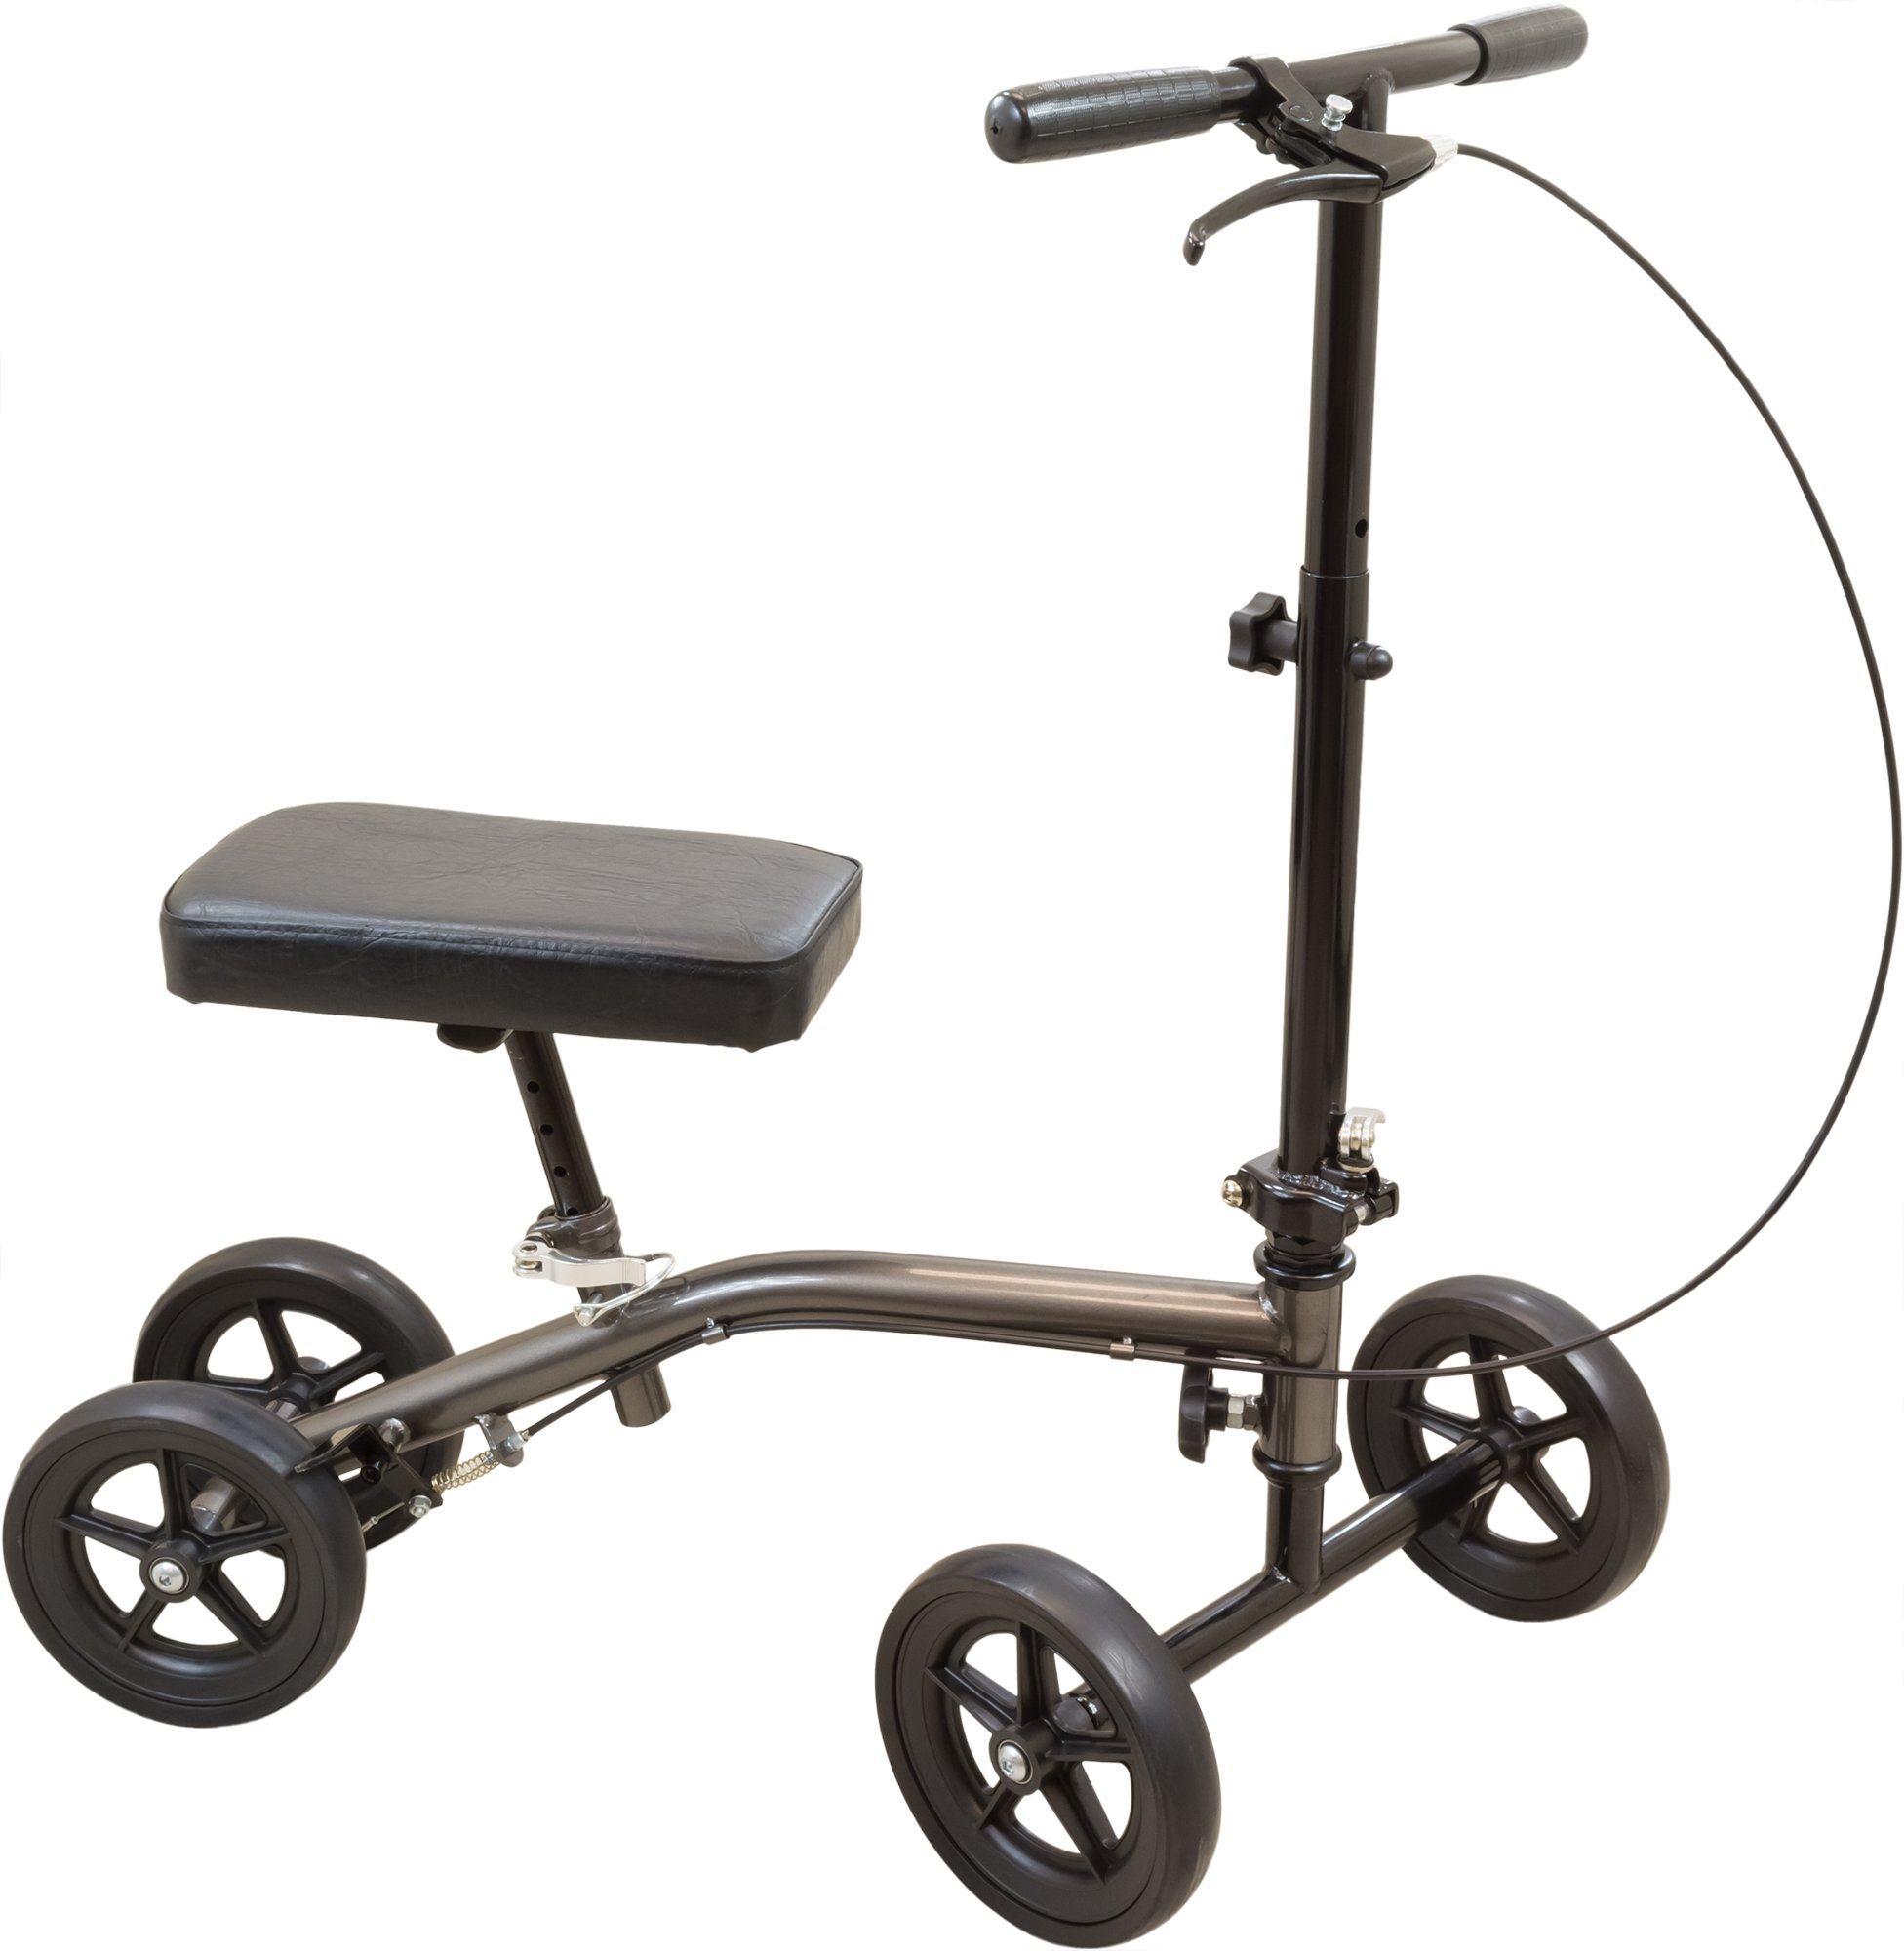 Roscoe Economy Knee Scooter, Sterling Grey, Crutch Alternative for Foot or Ankle Injuries, Adjustable Handlebar and Knee Platform Height